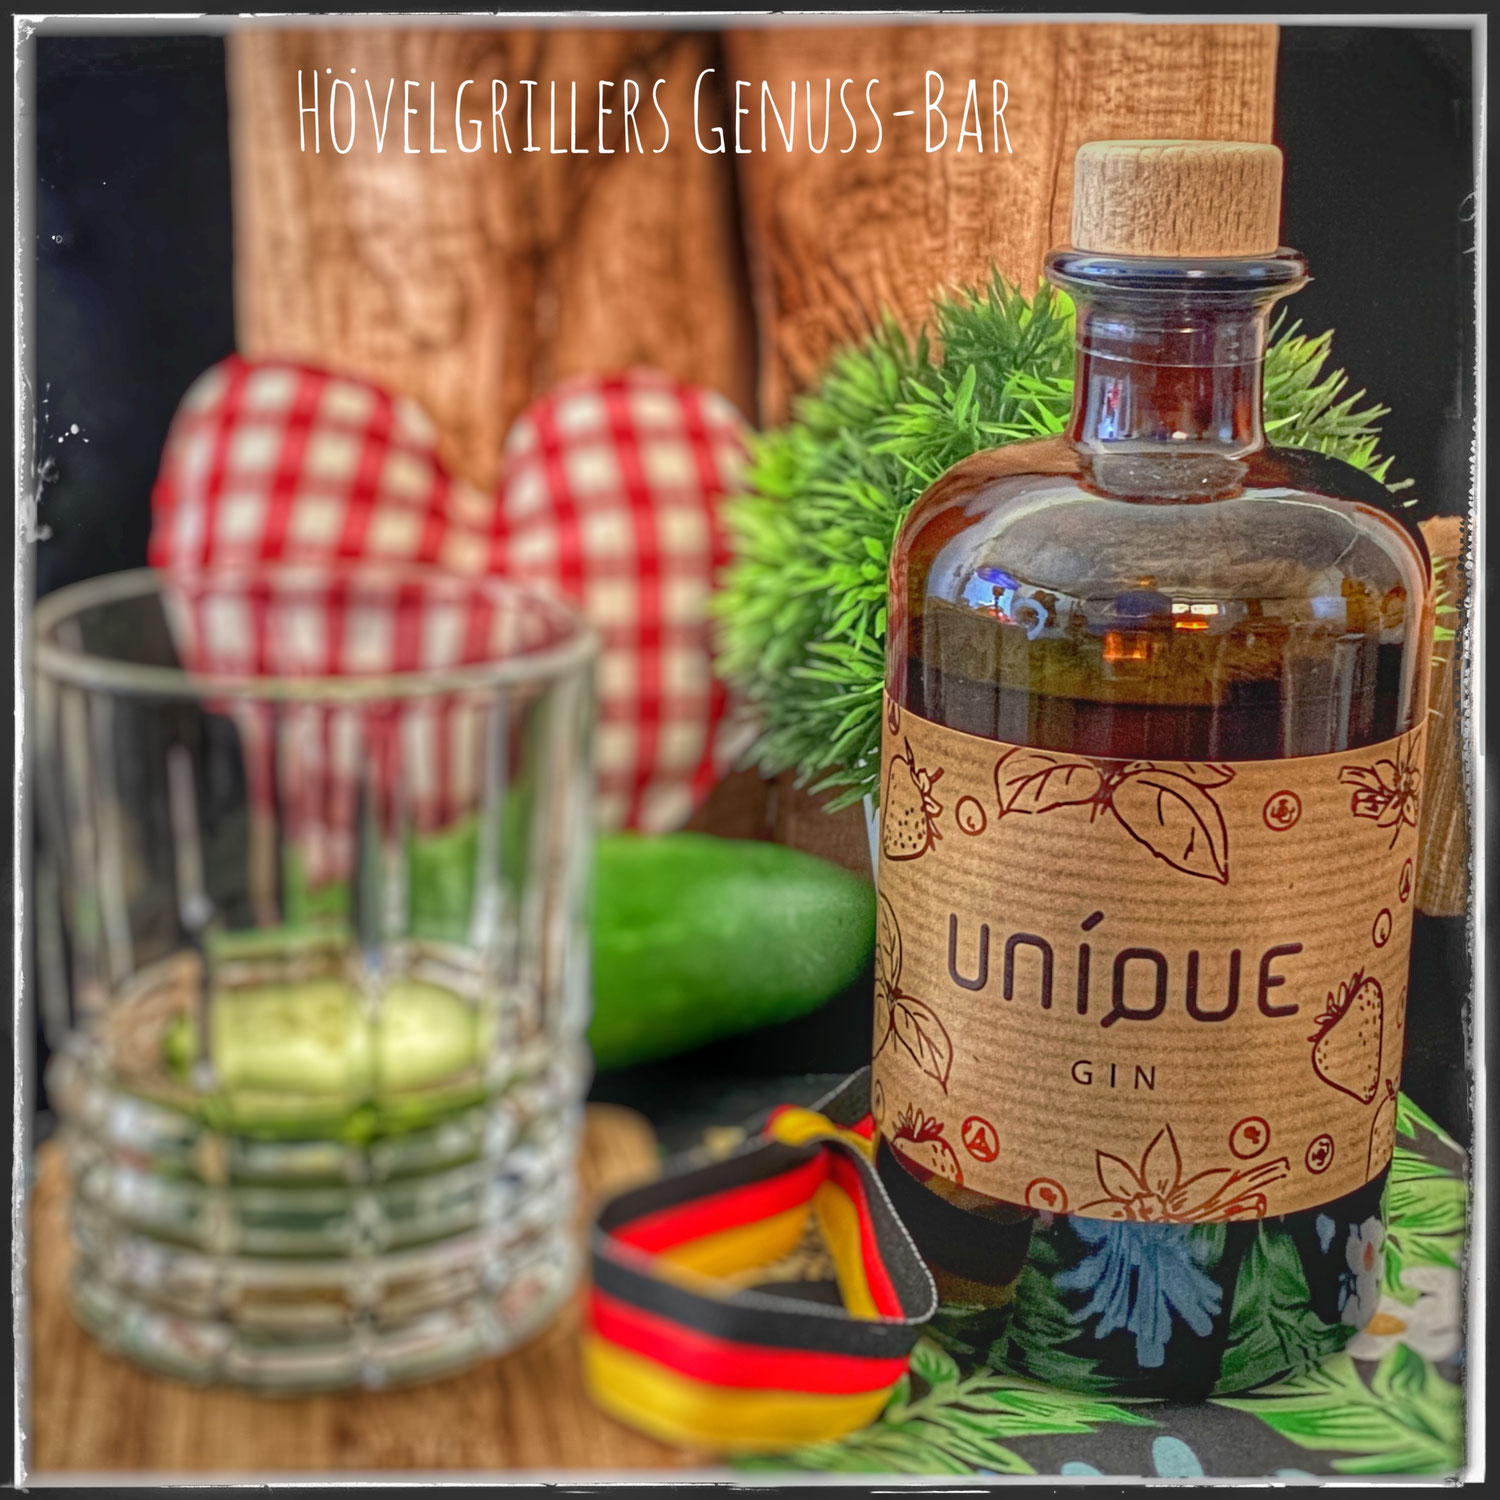 Unique Gin